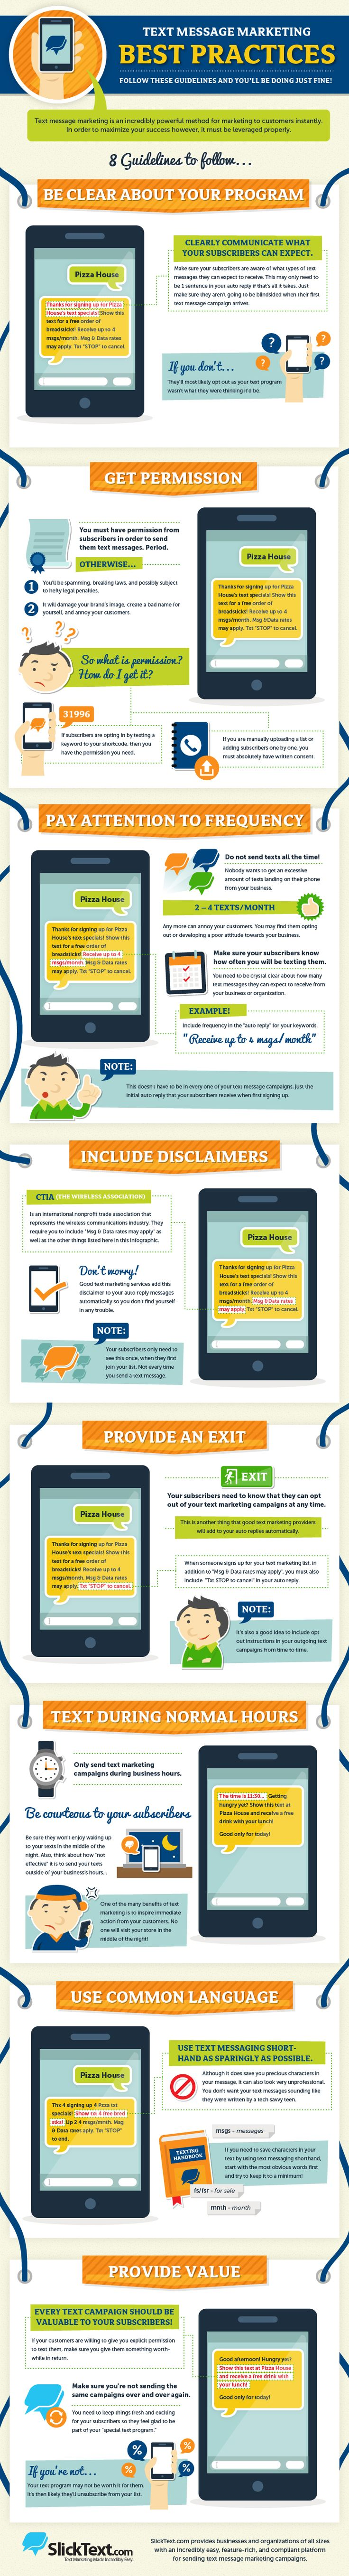 Text-Message-Marketing-Best-Practices-Infographic1.jpg (800×5900)